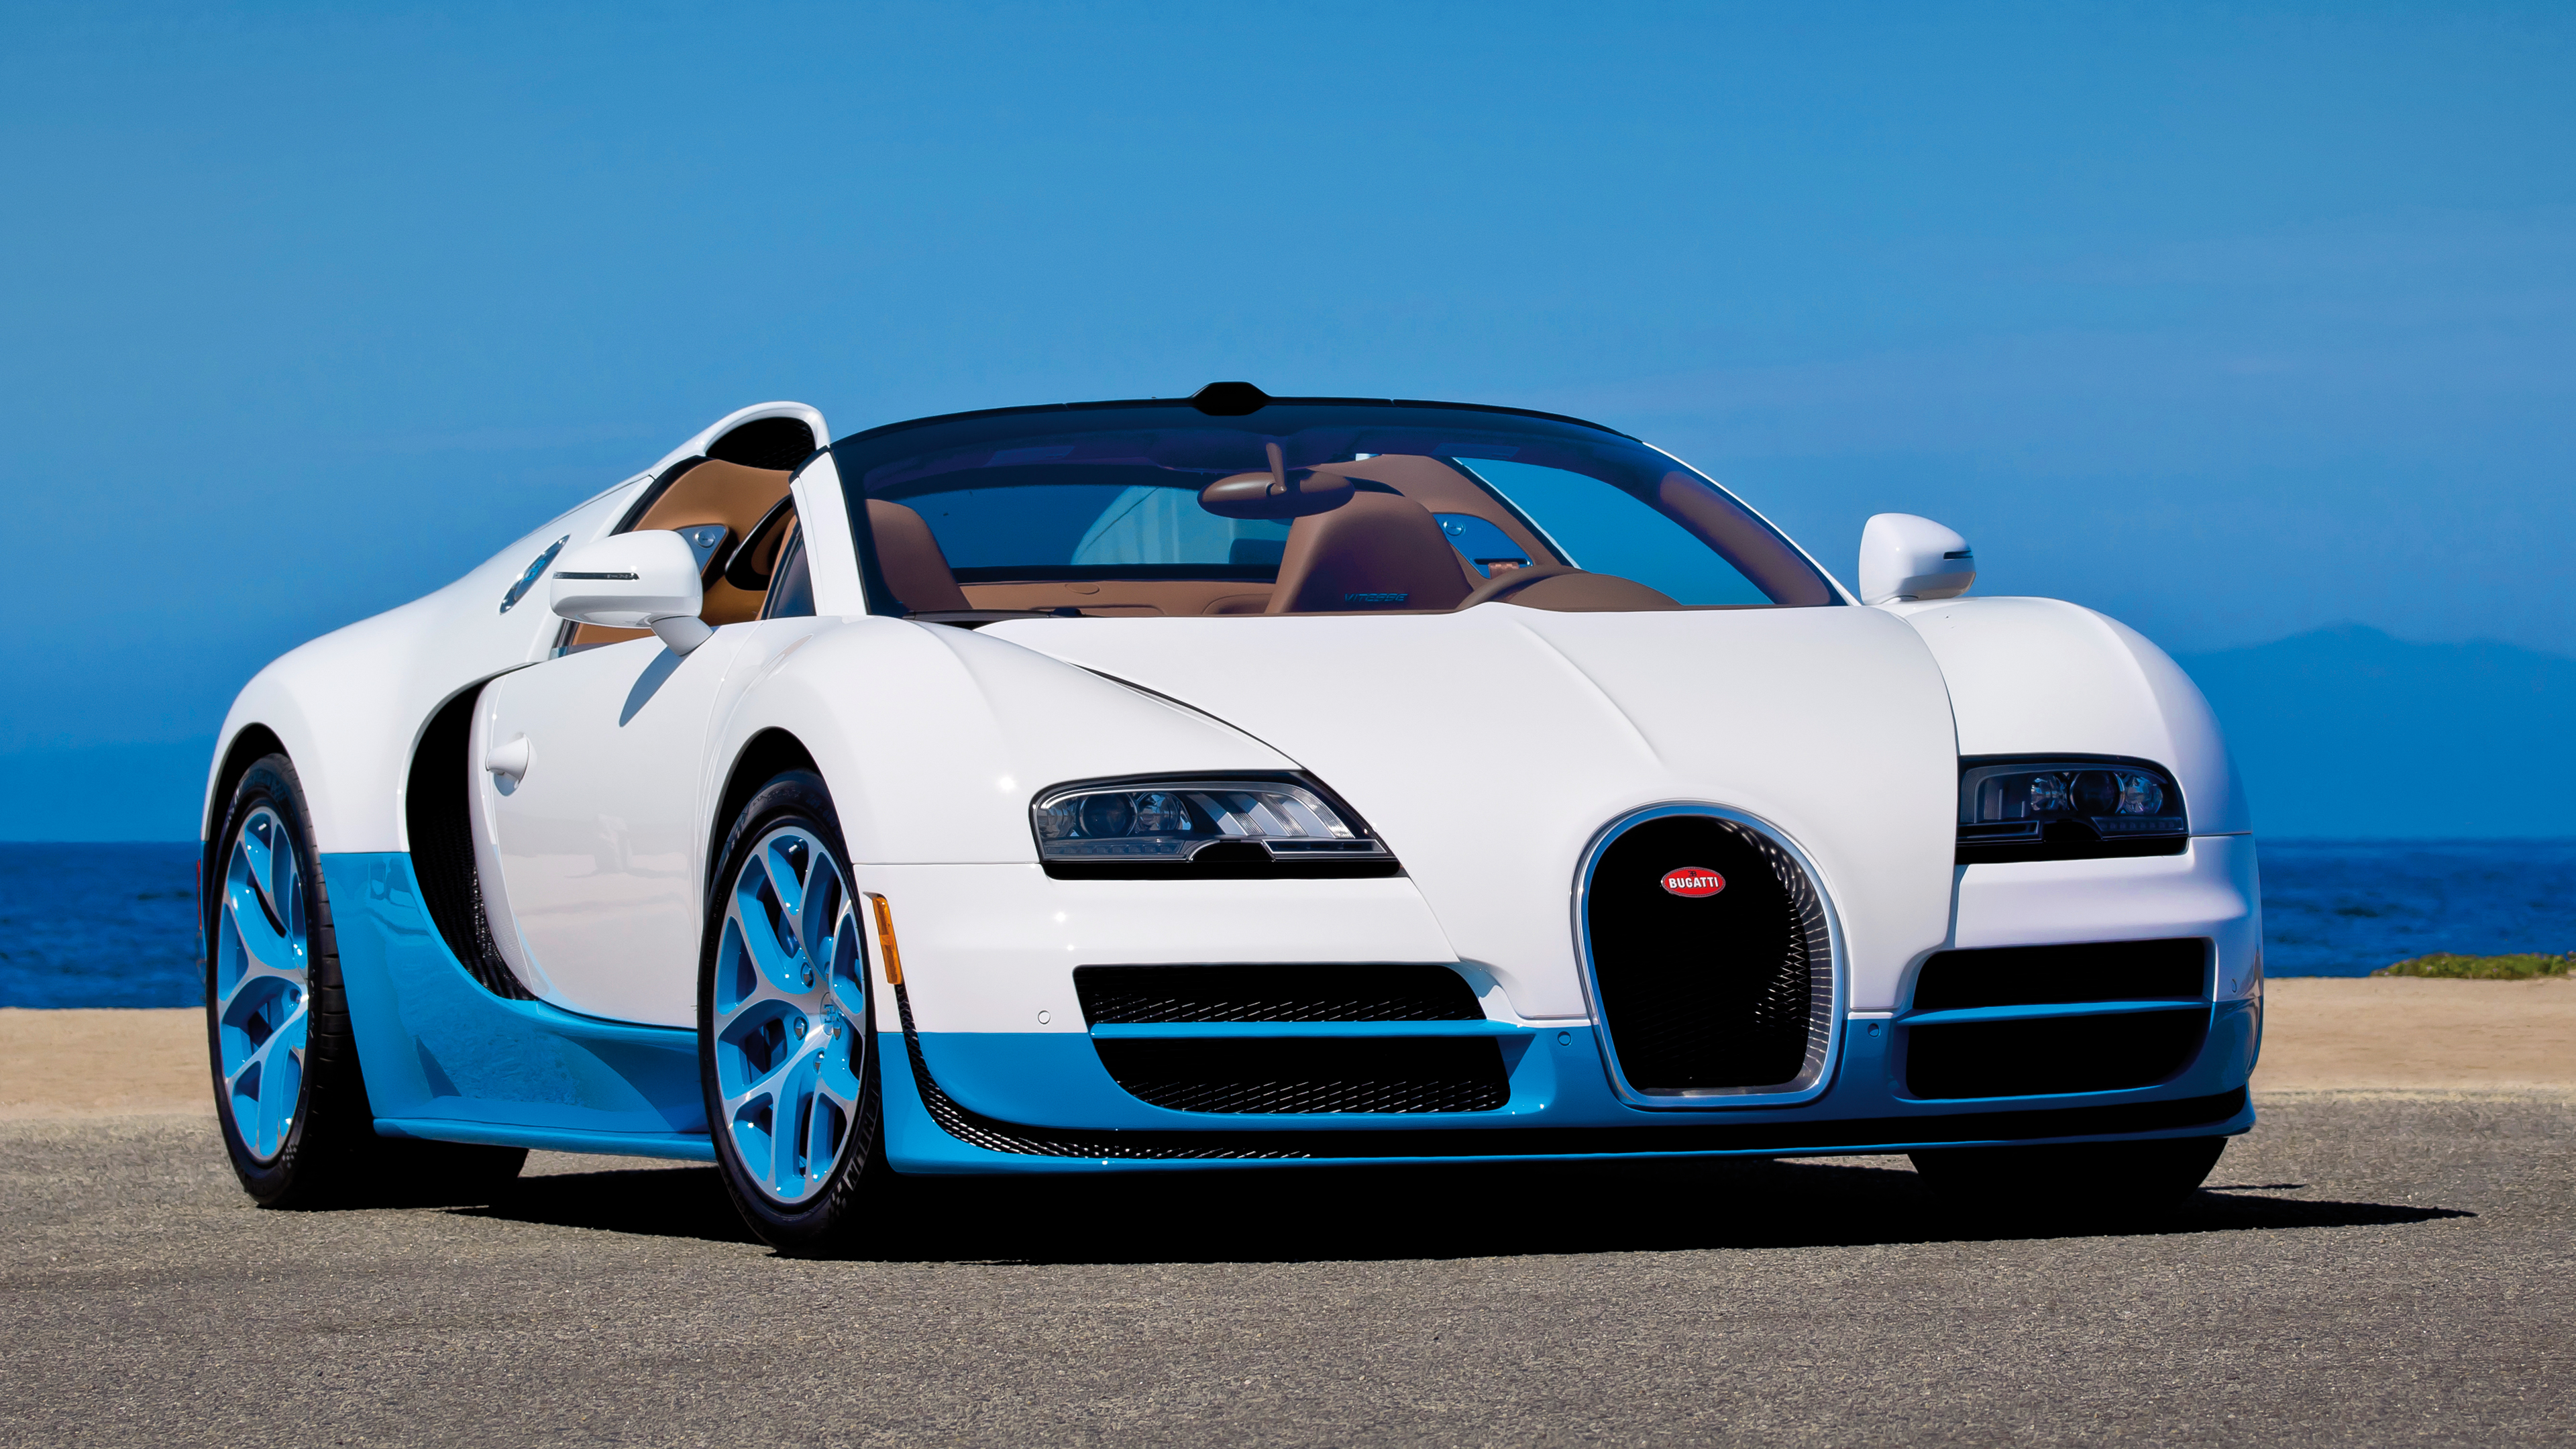 bugatti wallpapers hd | wallpaper.wiki